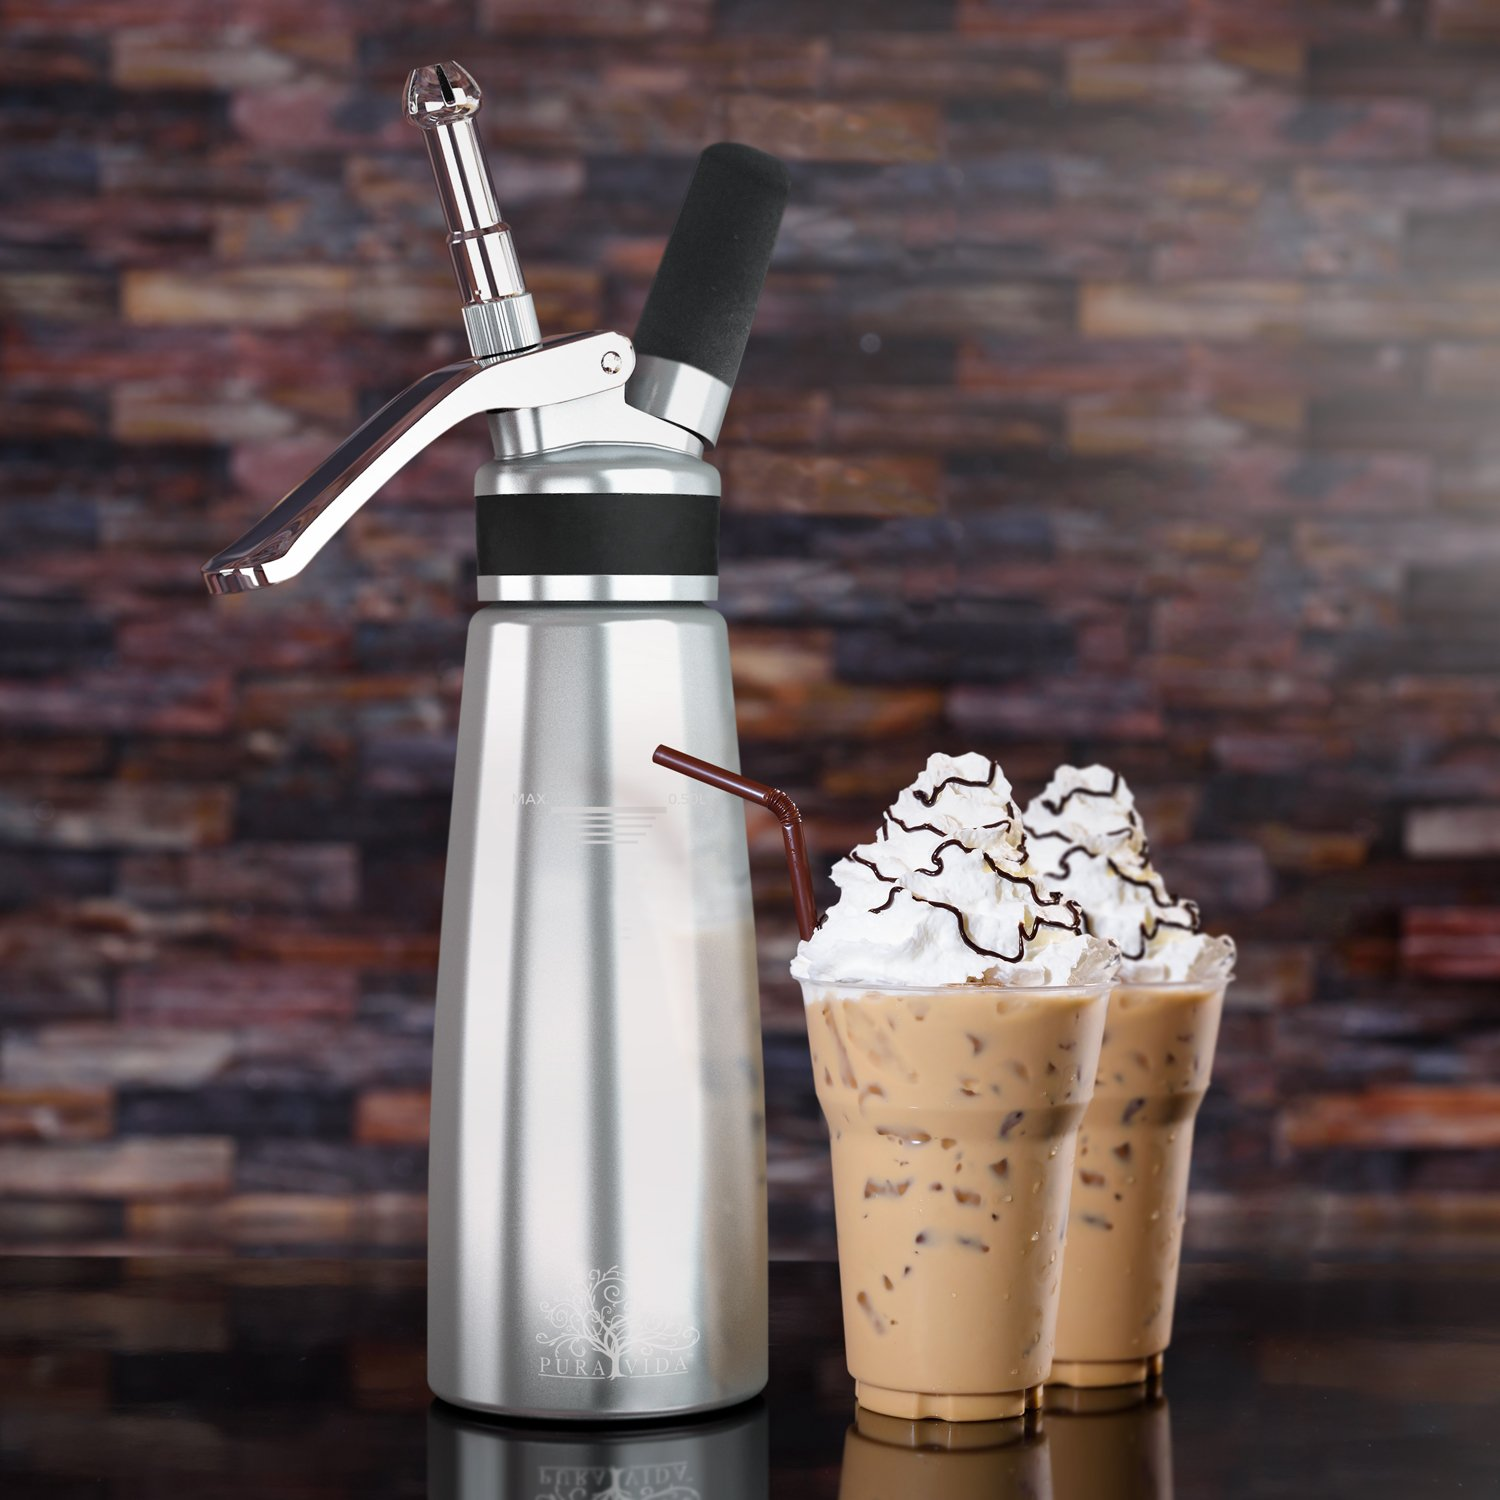 Whipped Cream Dispenser By Pura Vida – Durable, All Aluminum Body & Head – 3 Stainless Steel Decorating Tips & A Brush – Half Quartz Size – Dishwasher Safe – Gift Box Packaging – Easy Instructions